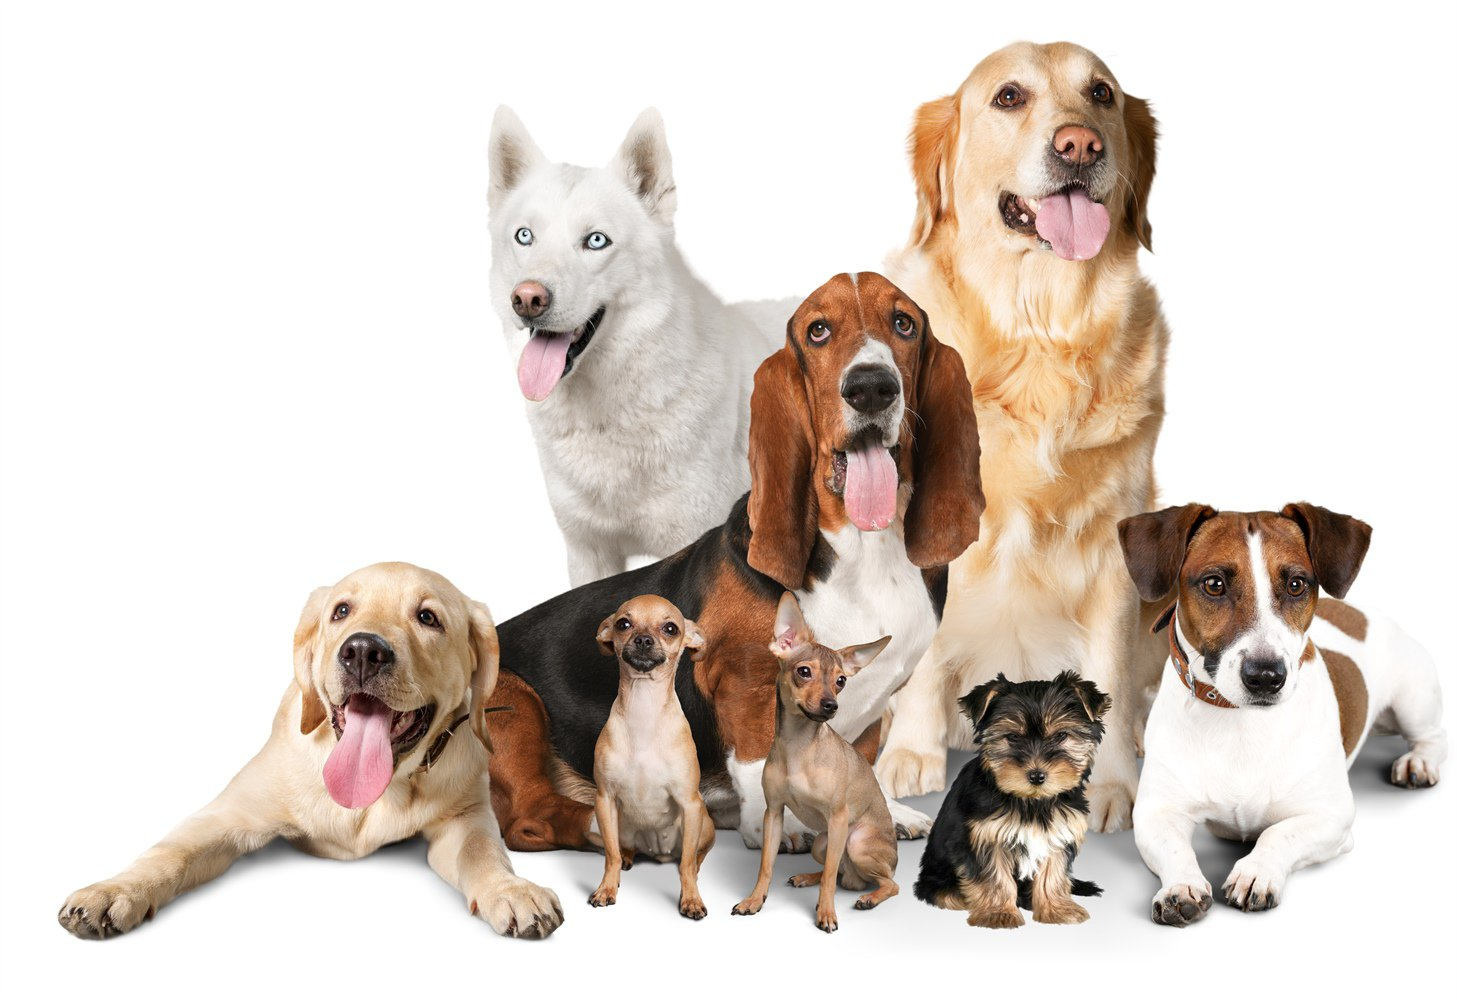 various types of dog breed together